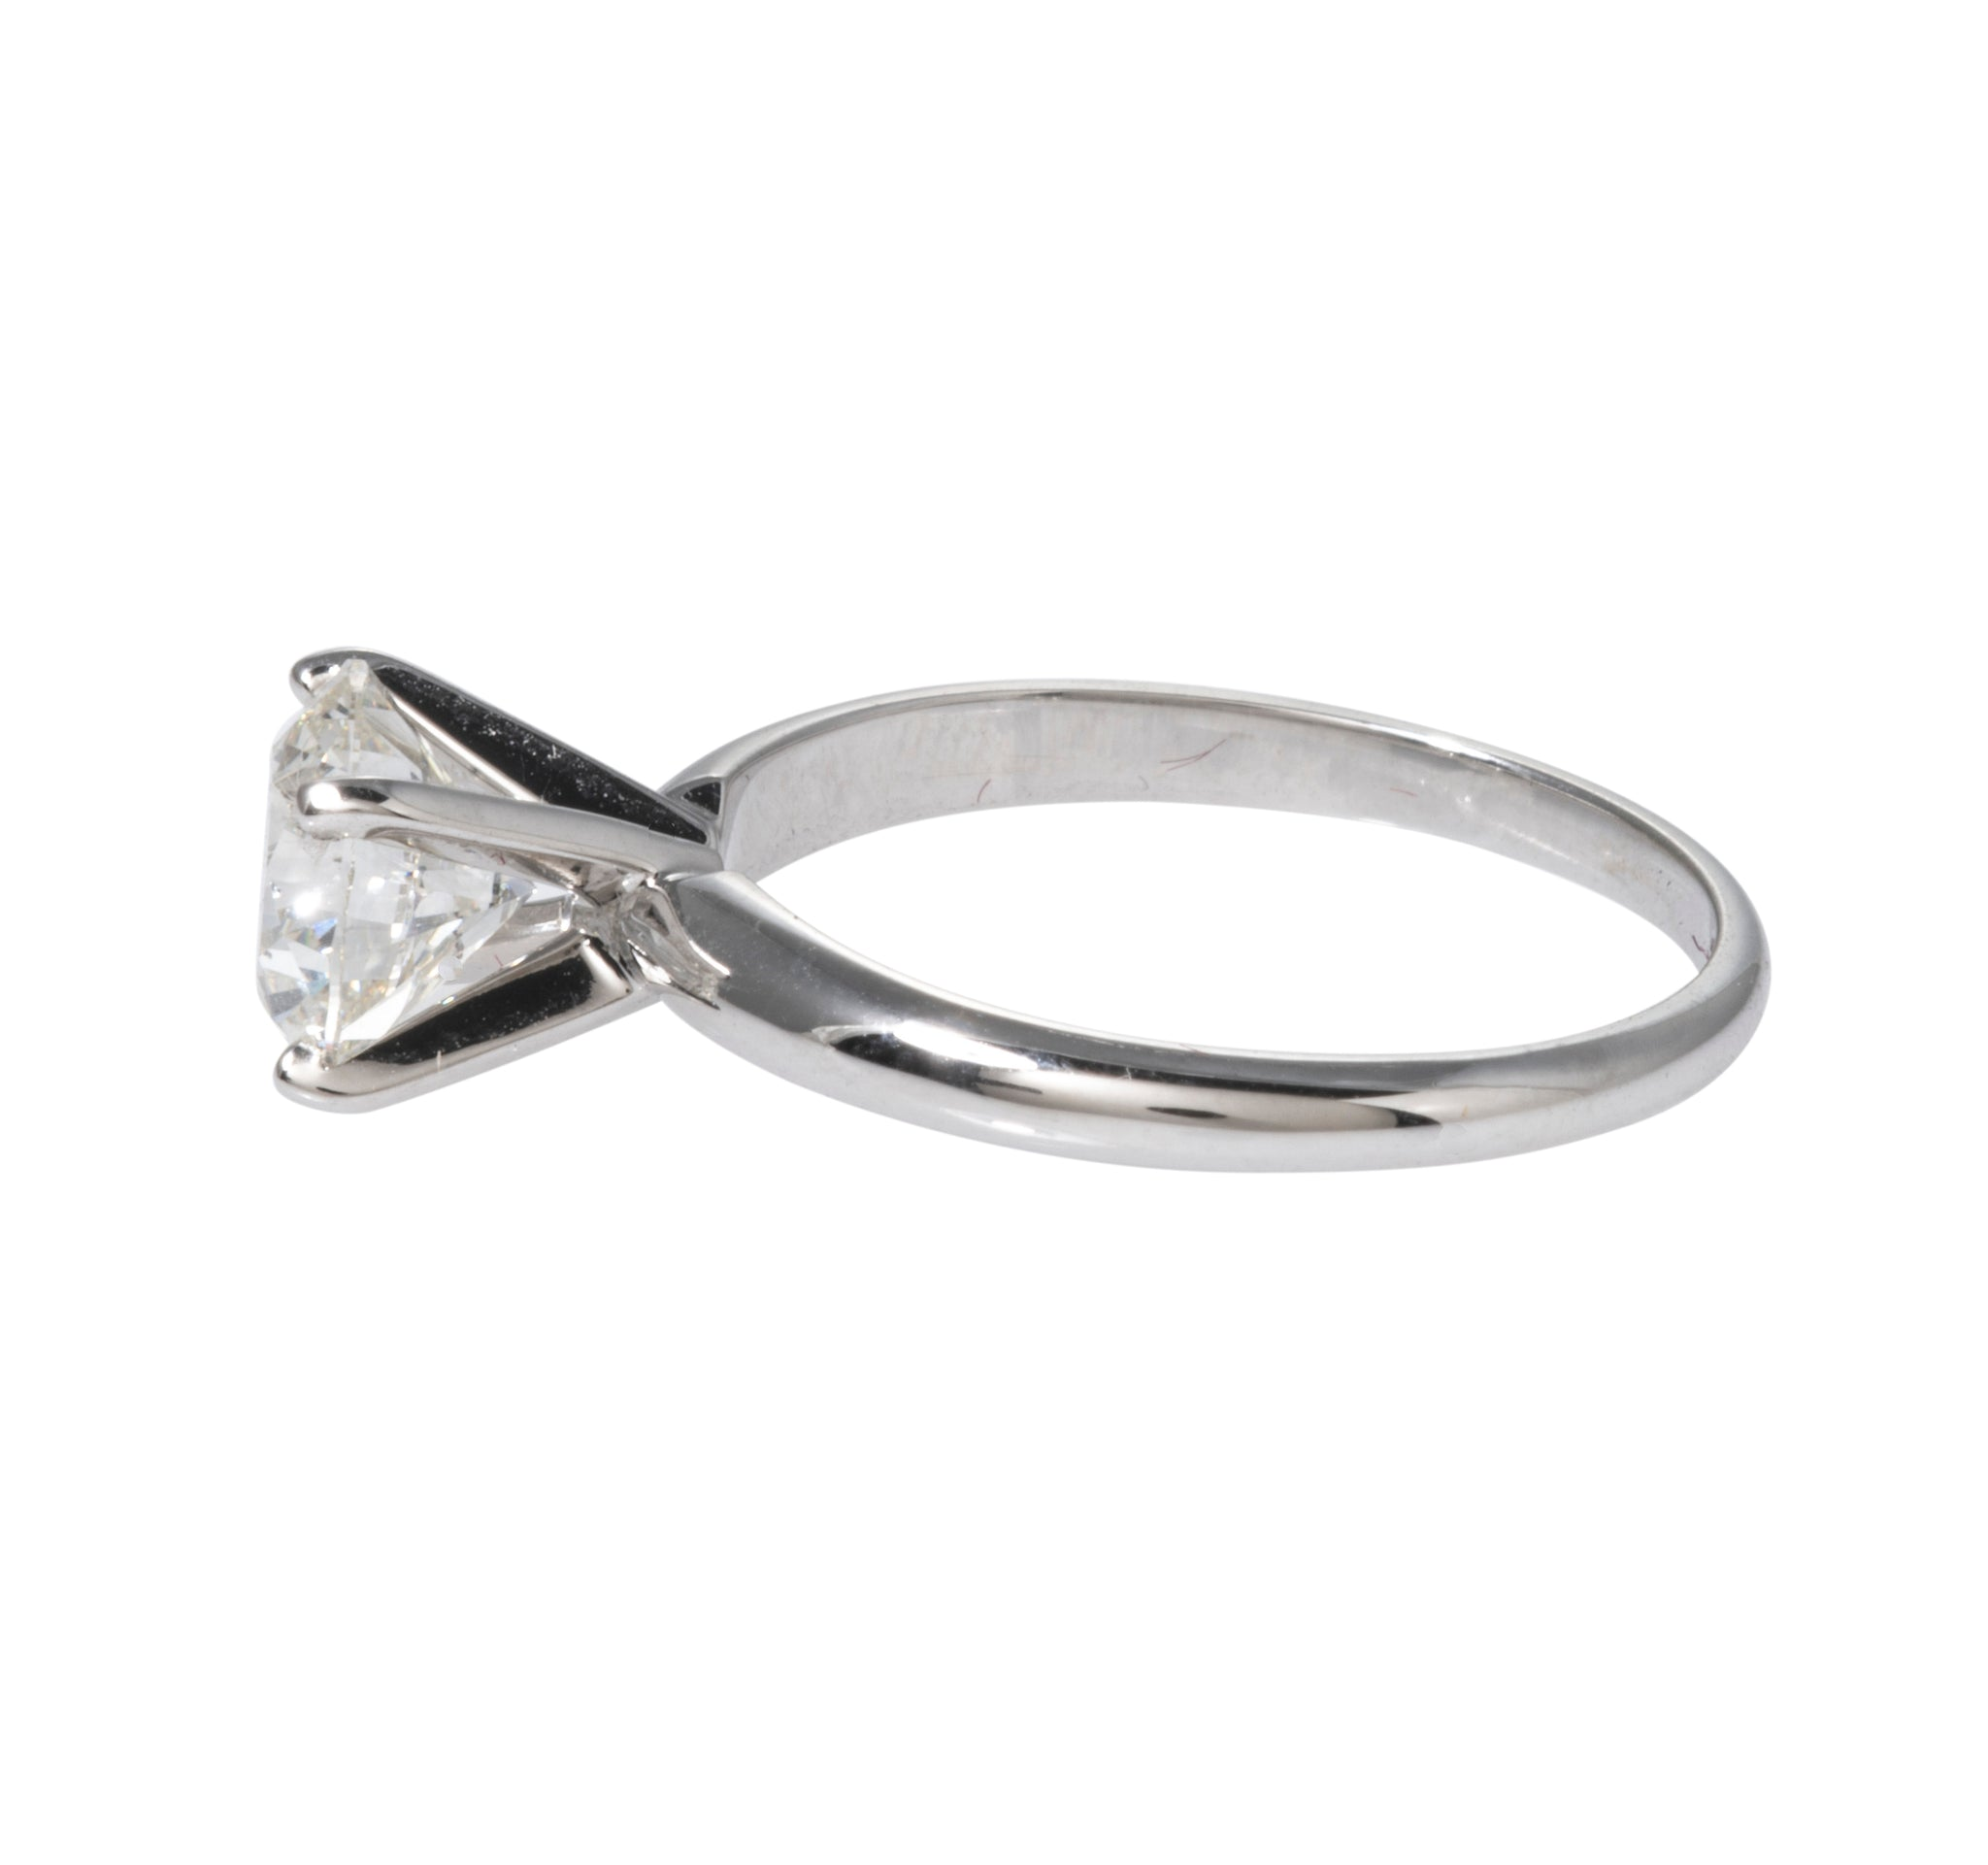 1.51ct Diamond Solitaire 14K White Gold Engagement Ring